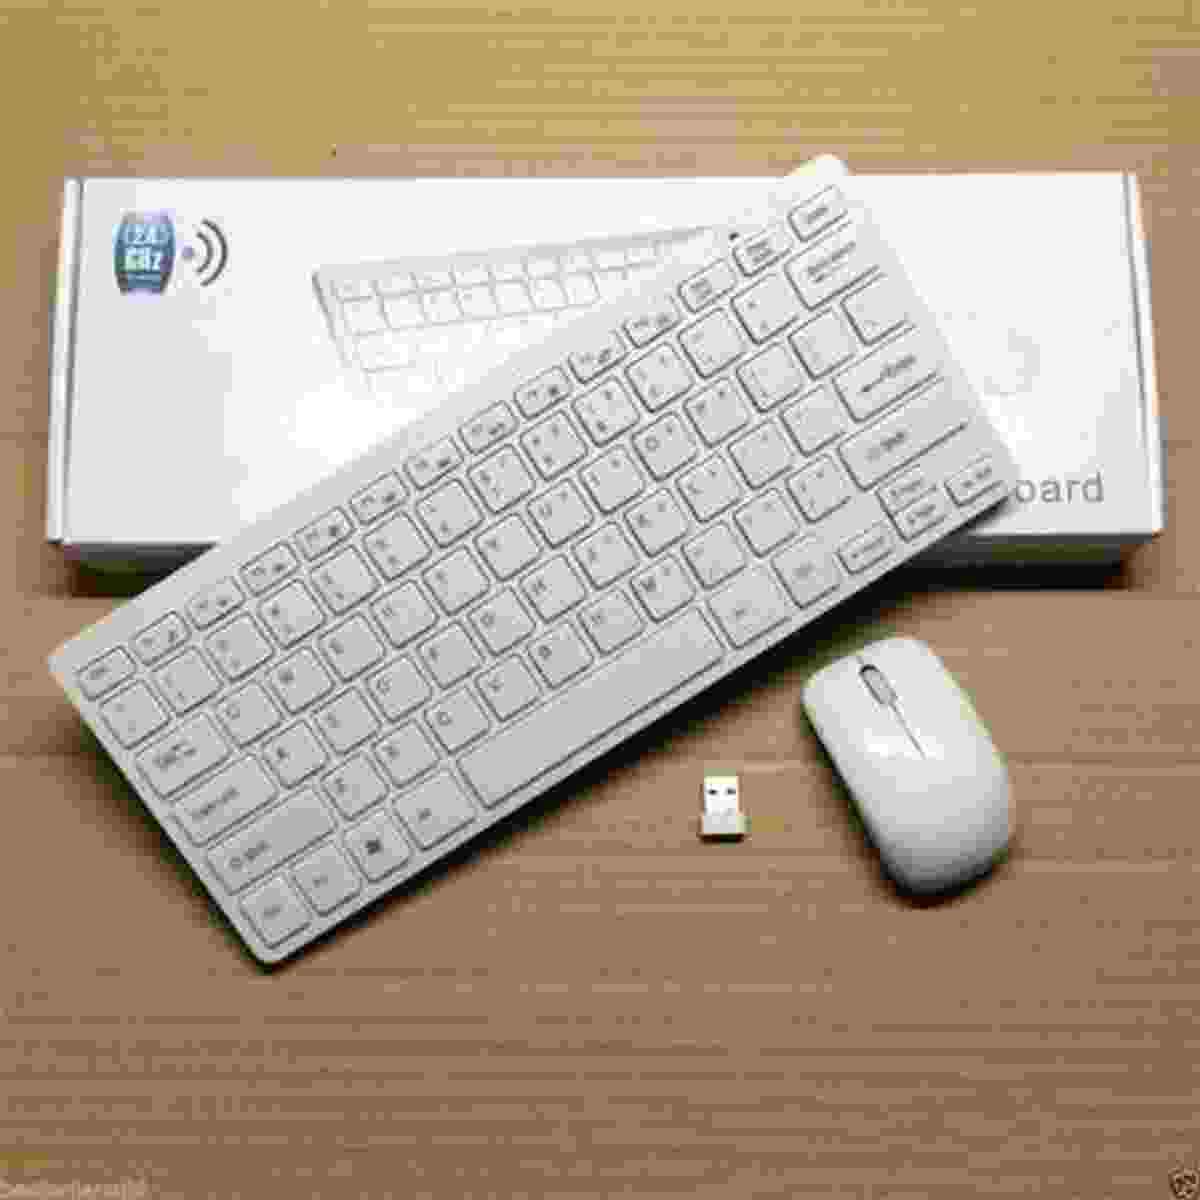 Terabyte mini wireless Laptop Bulk Purchase Combo Mouse+Keyboard